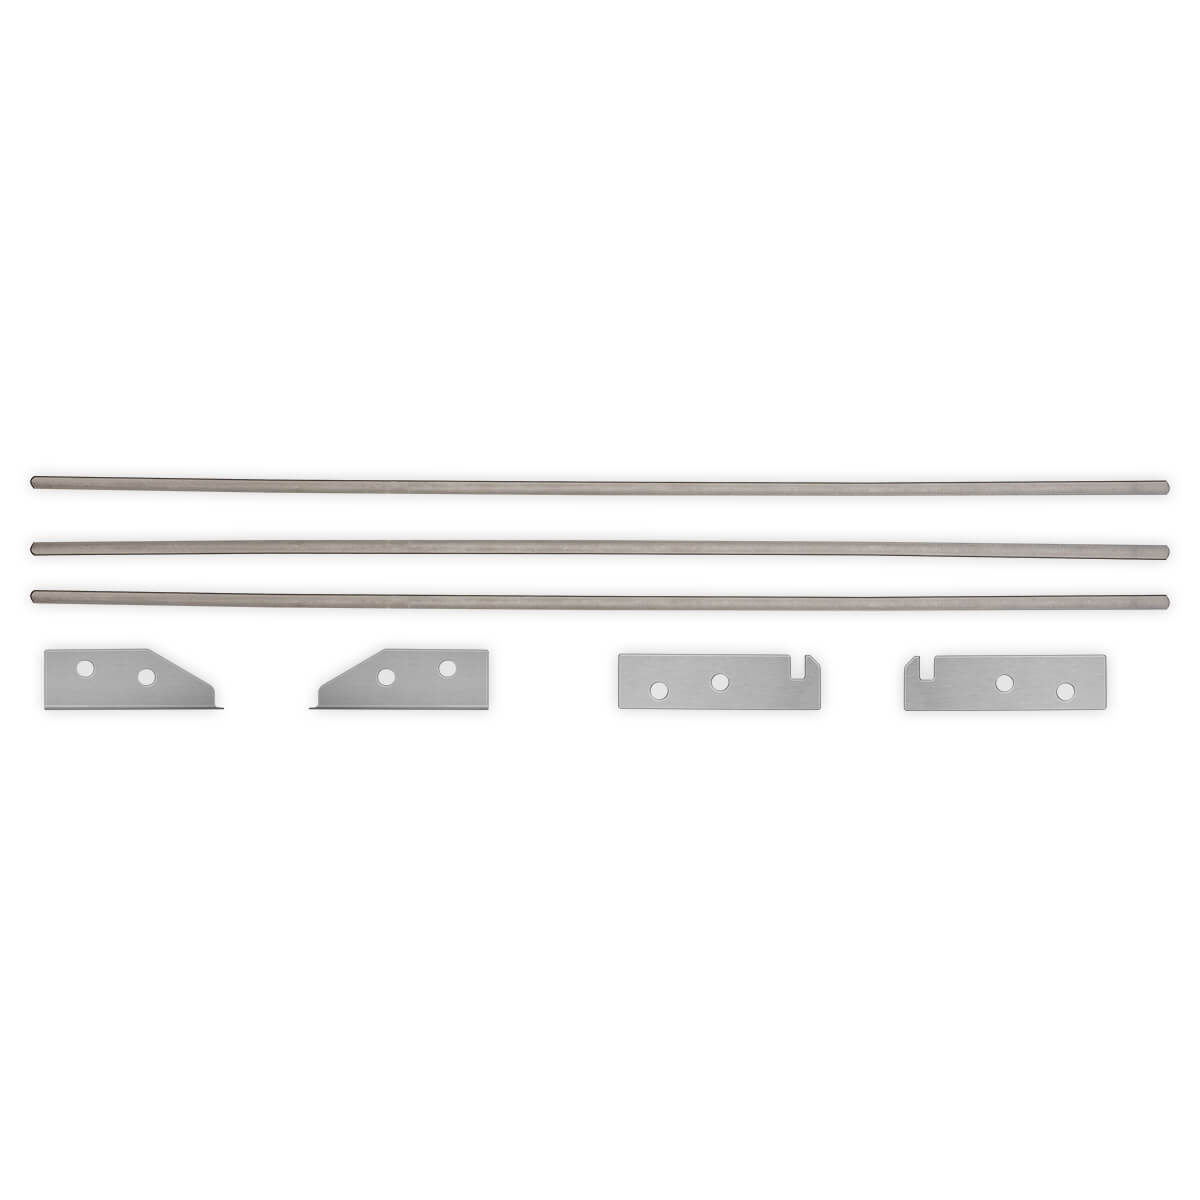 "LEVEL5 Flat Box Repair Kit for 10"" Flat Box 